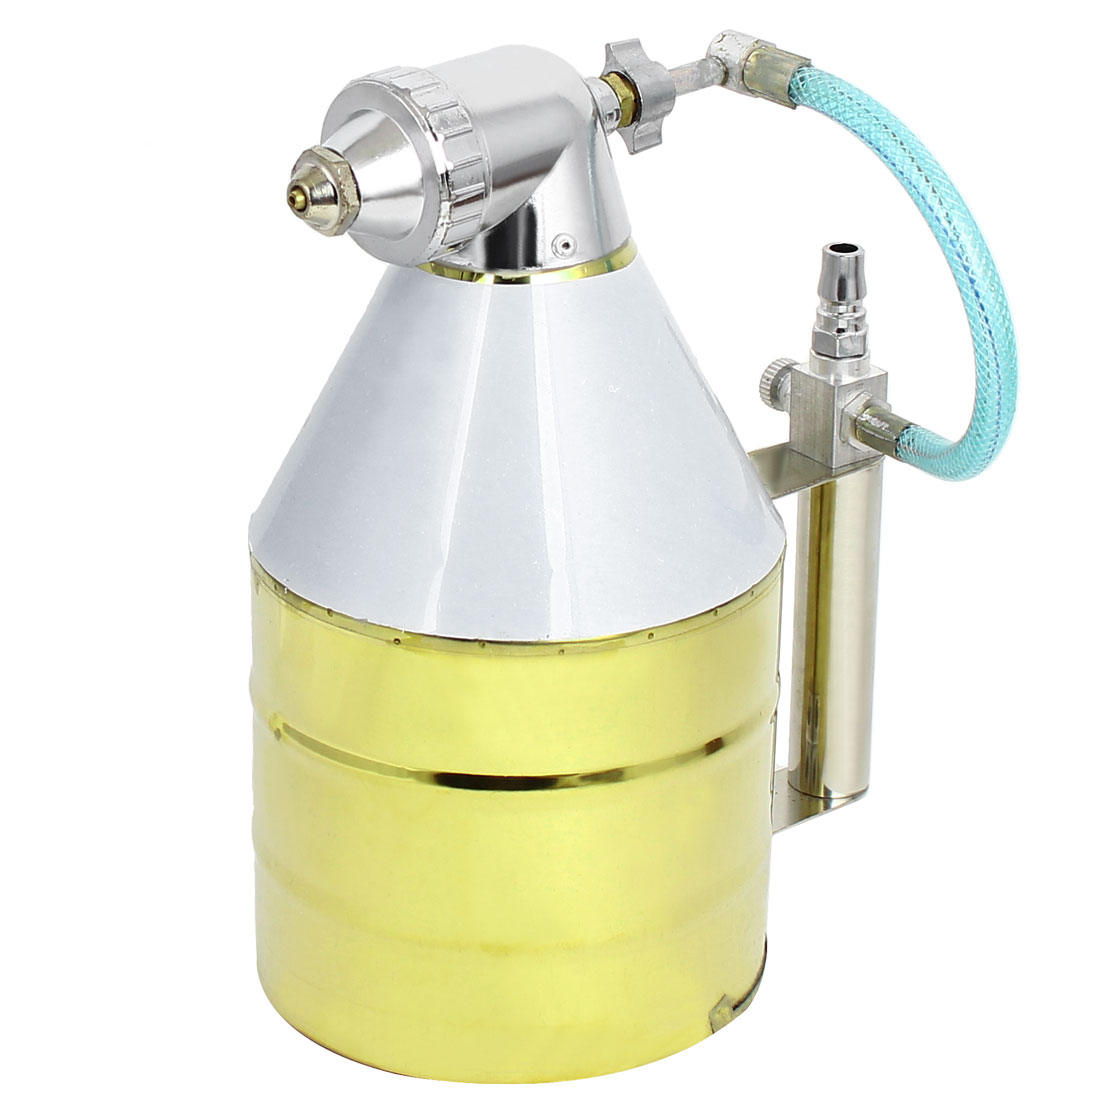 4mm Nozzle Air Hopper Spray Gun Painting Sprayer Tool for Wall